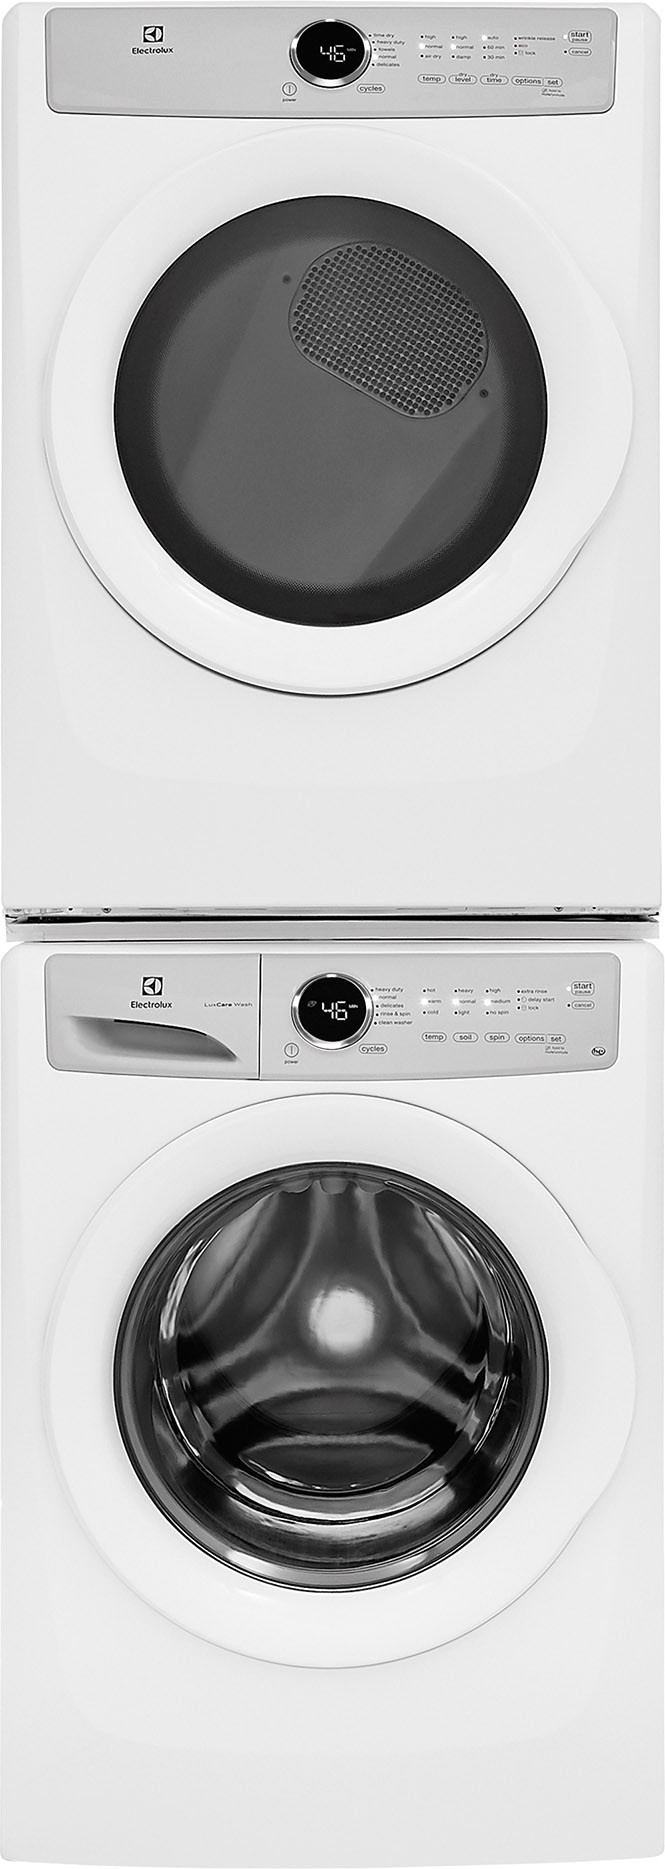 Electrolux Appliance Packages